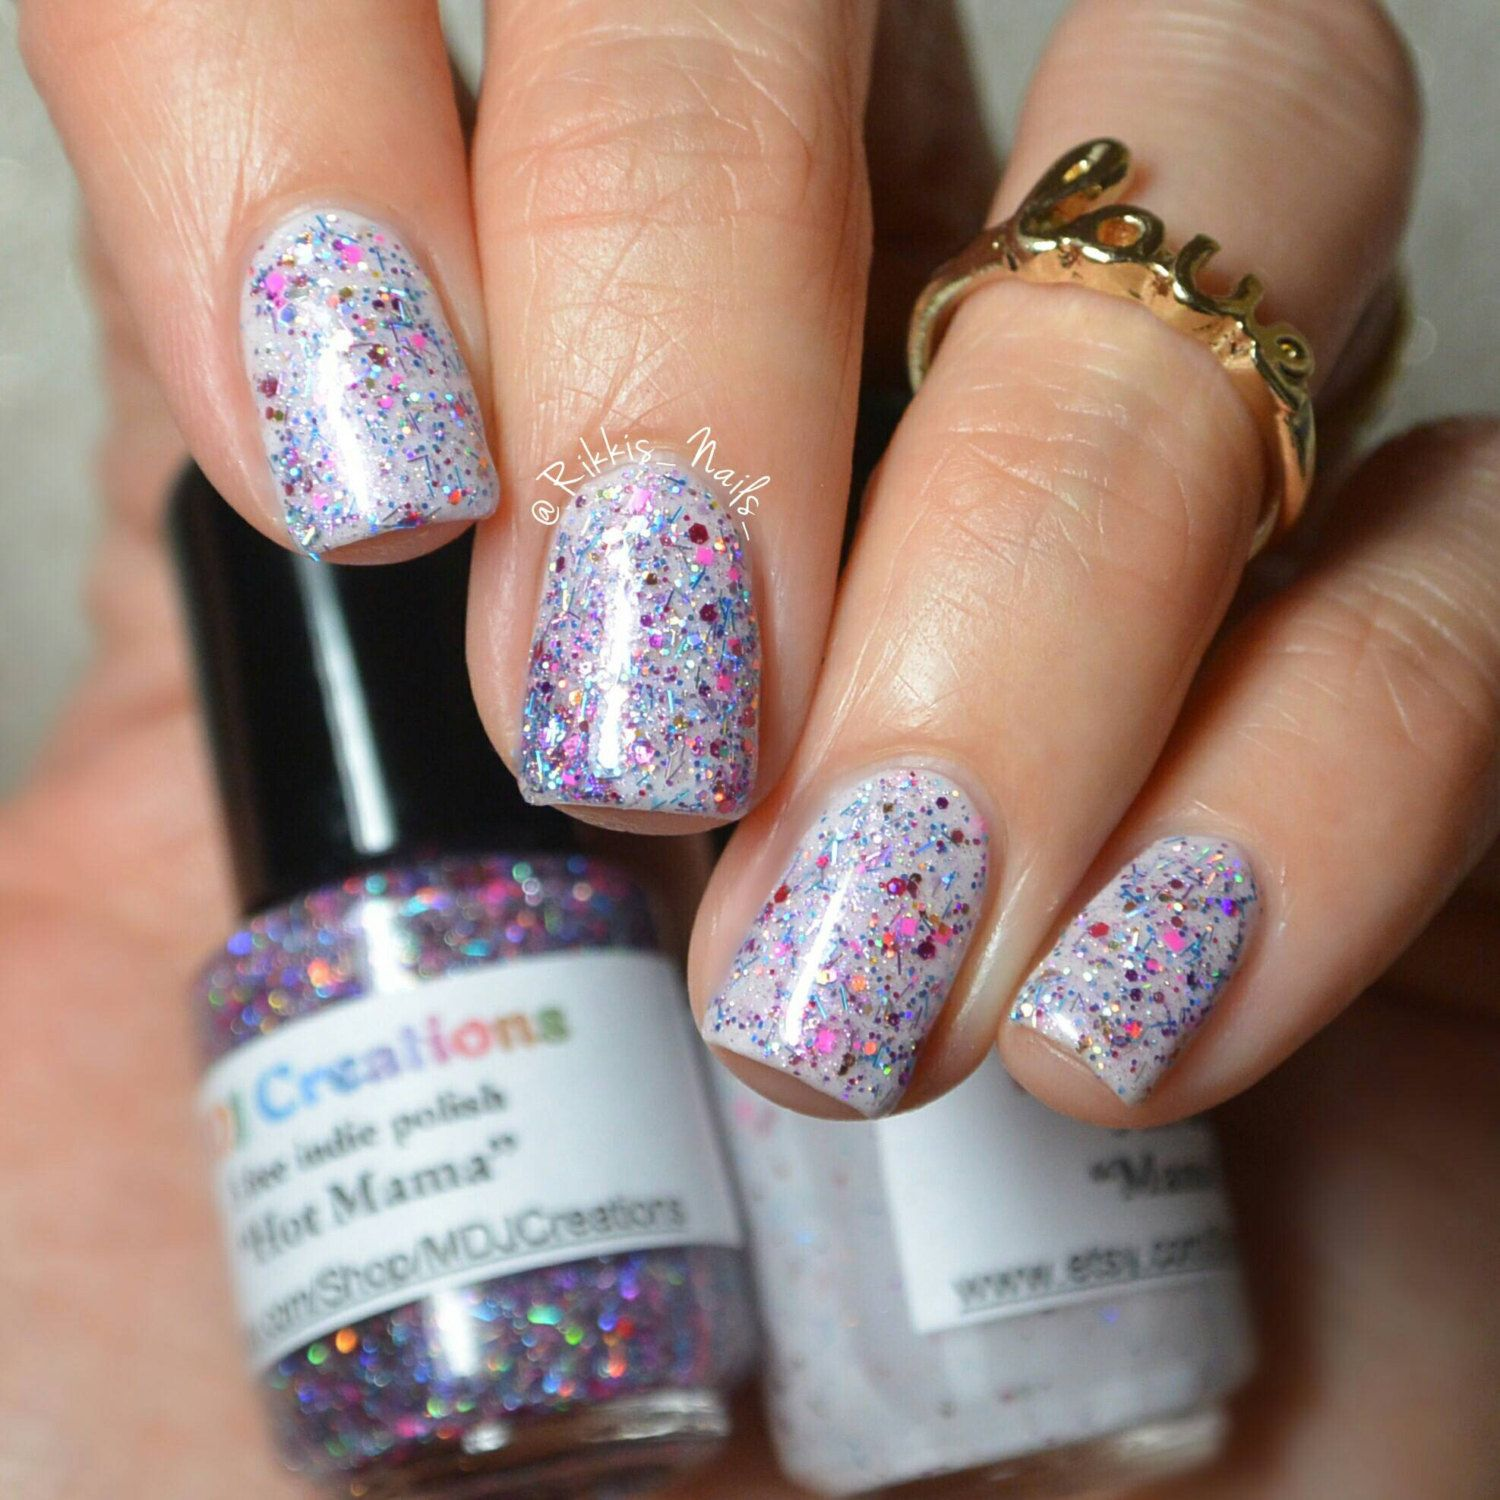 New! Mama\'s Love, Glitter Crelly 5 Free Nail Polish by MDJ Creations ...